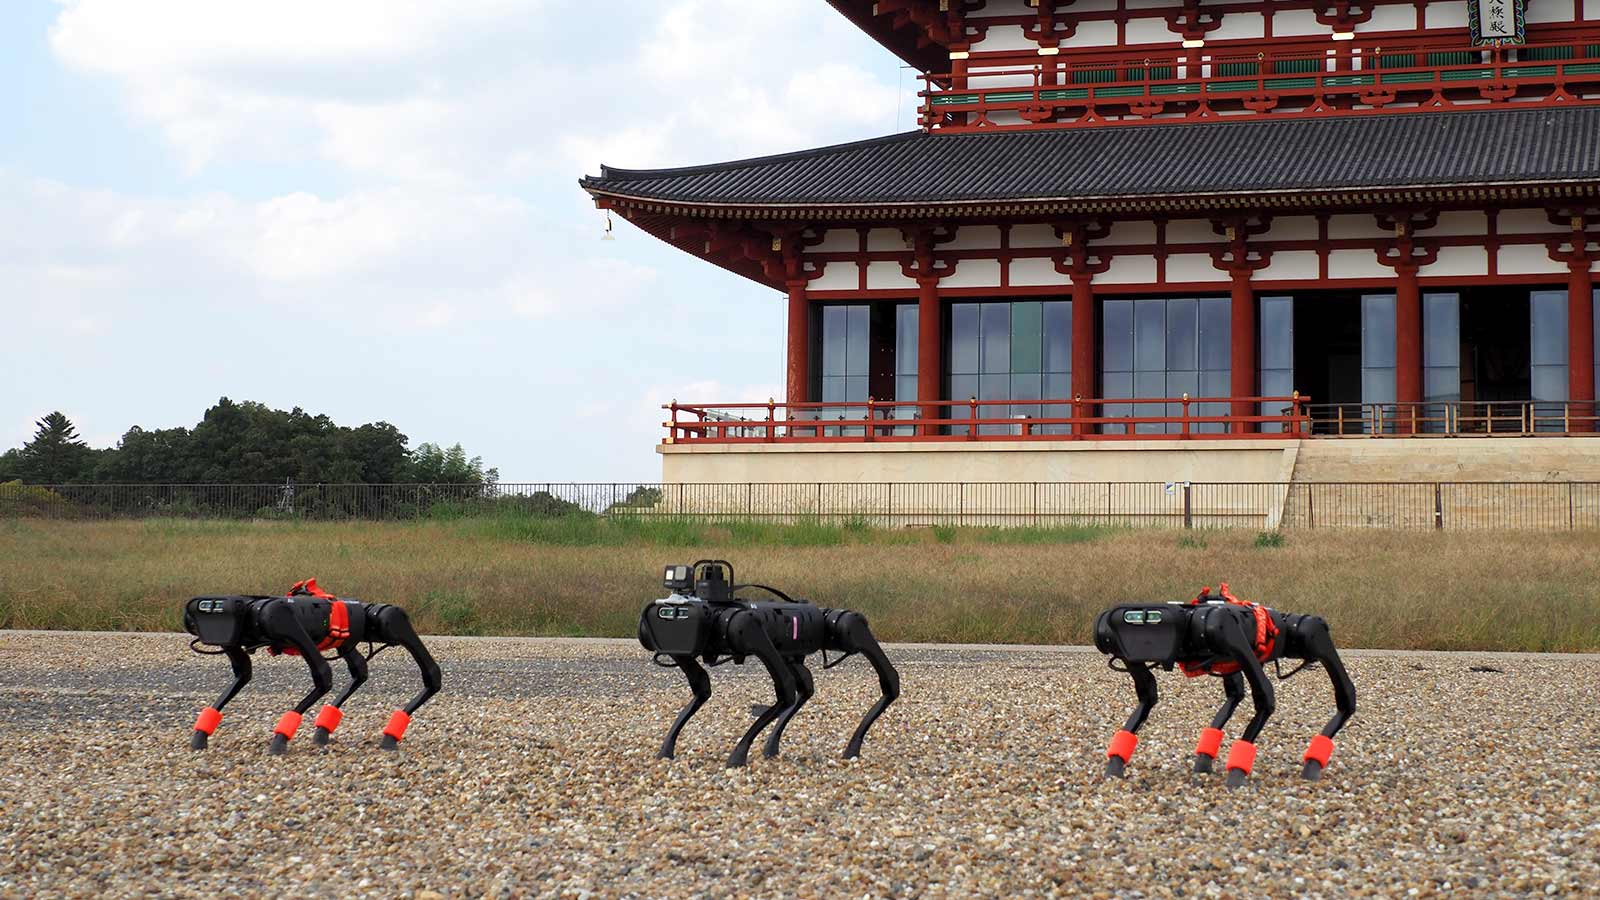 Several quadruped robots in front of a palace